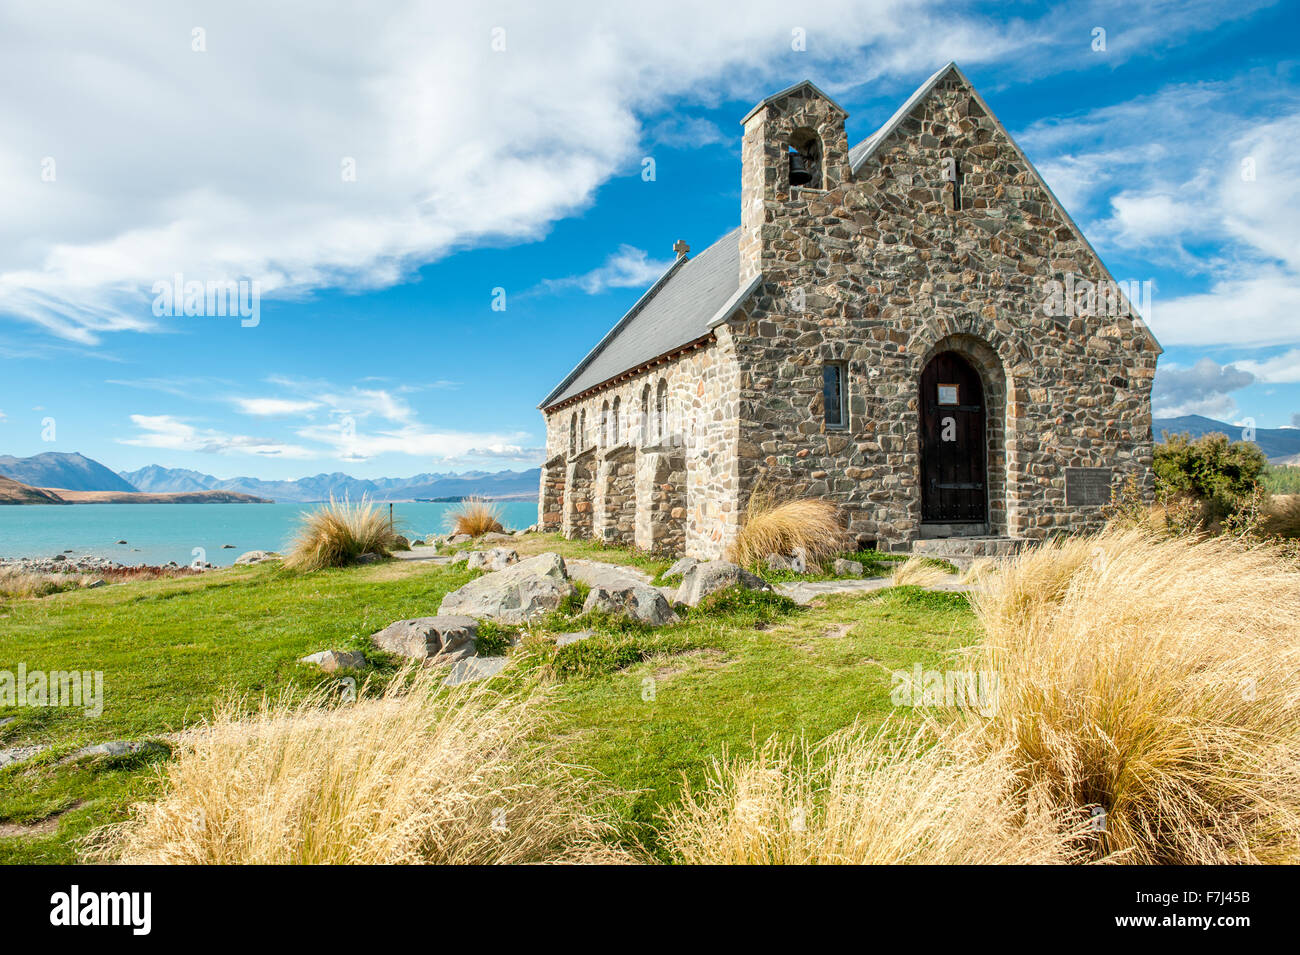 Windy day at Church of the Good Shepherd, Lake Tekapo, New Zealand - Stock Image